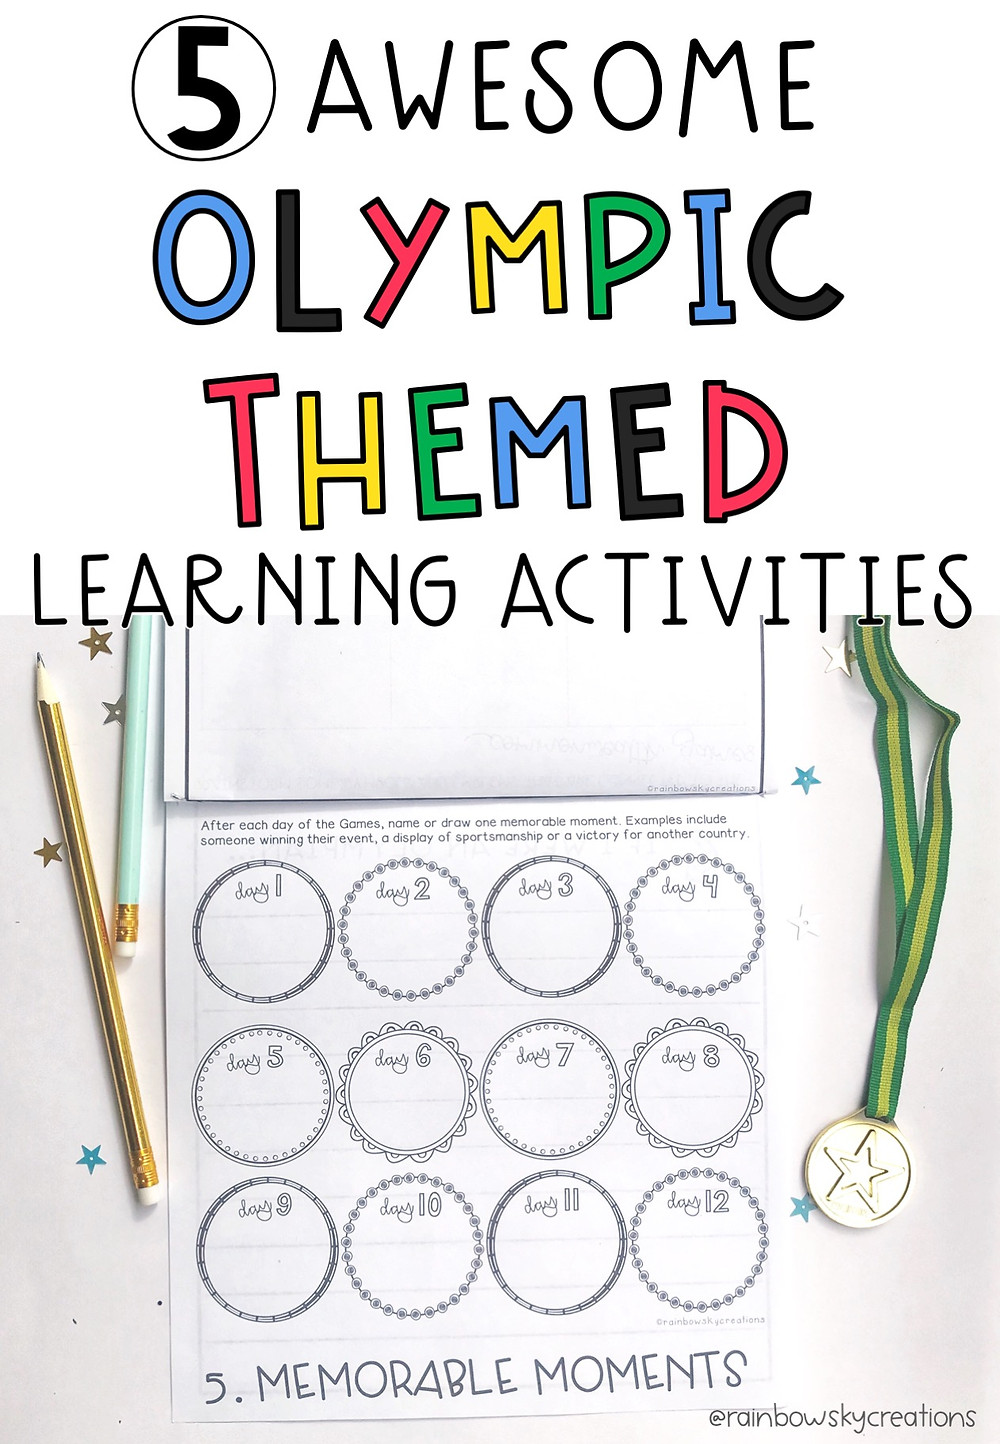 5-awesome-olympic-lessons-for-kids